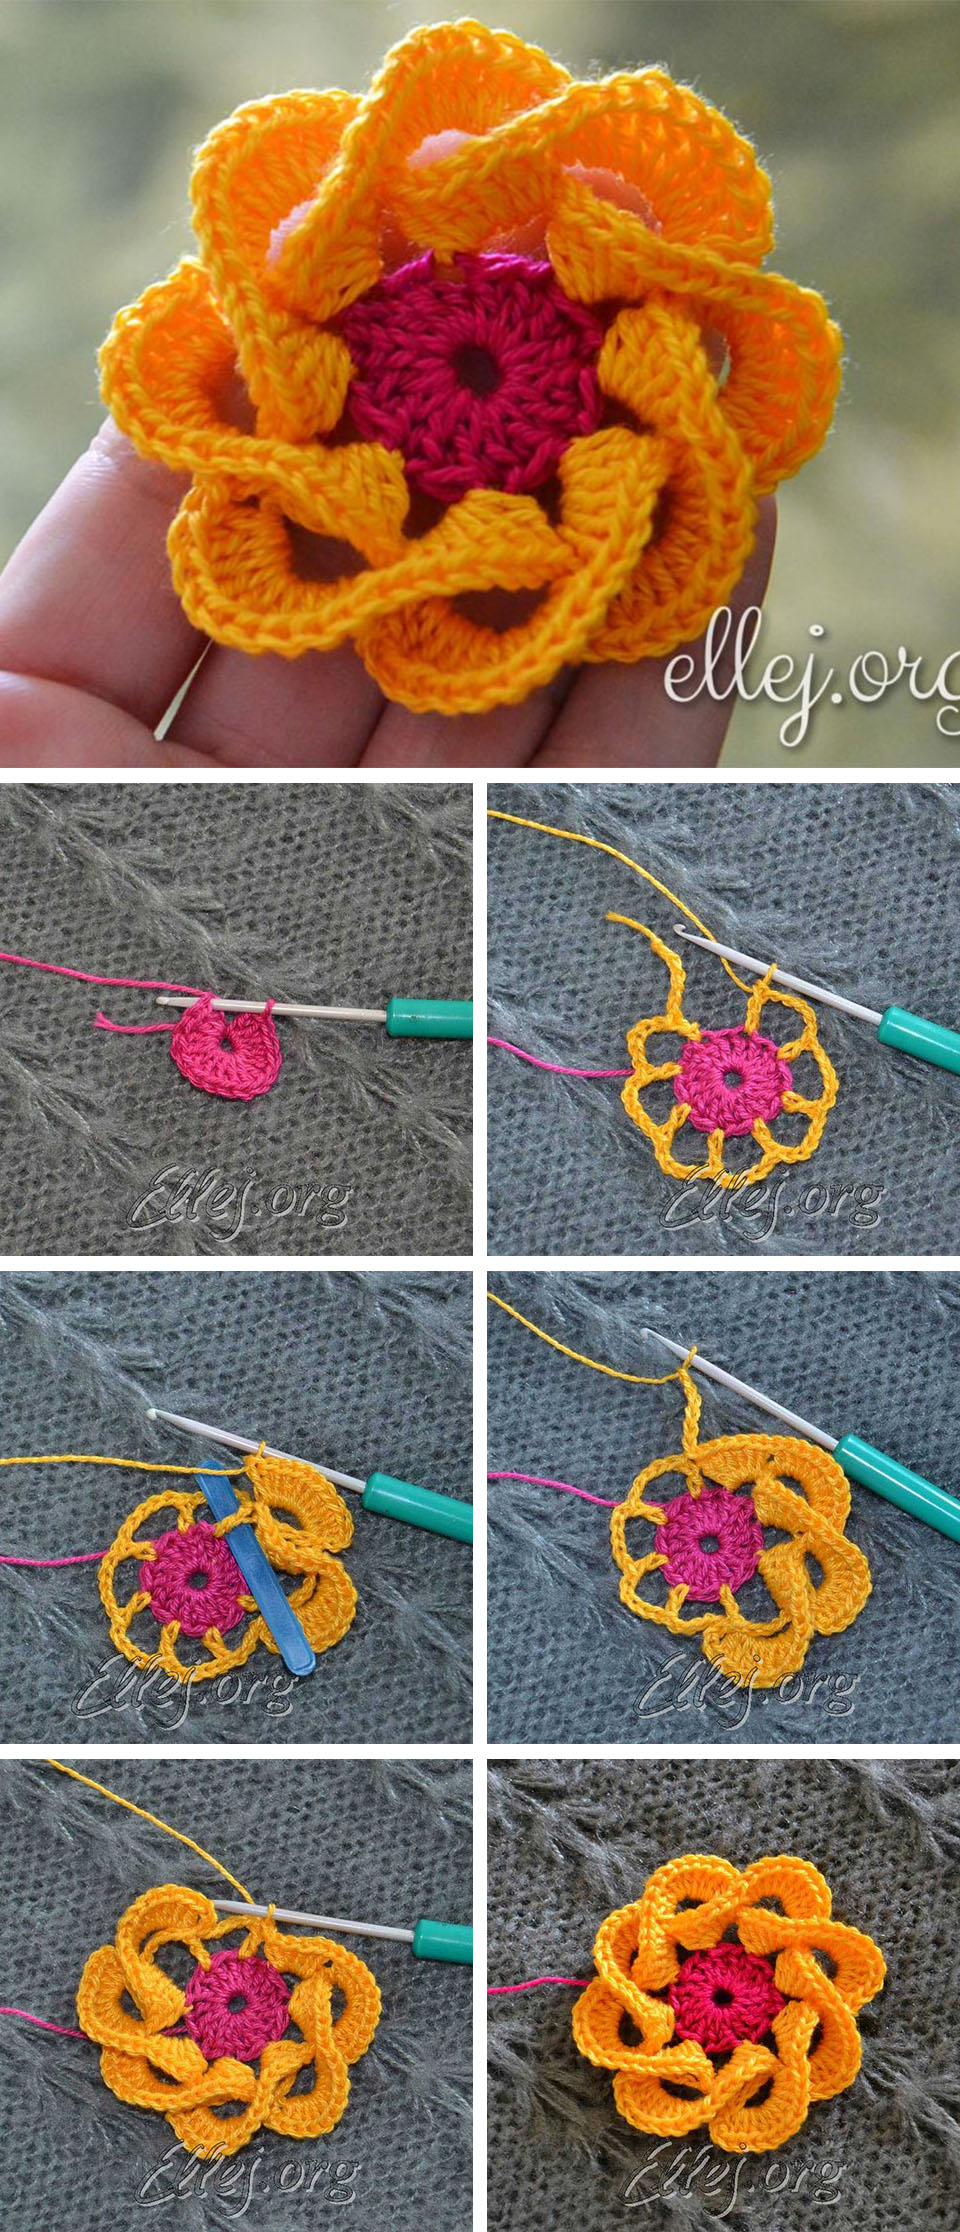 Multi Petals Crochet Flower Pattern Tutorial